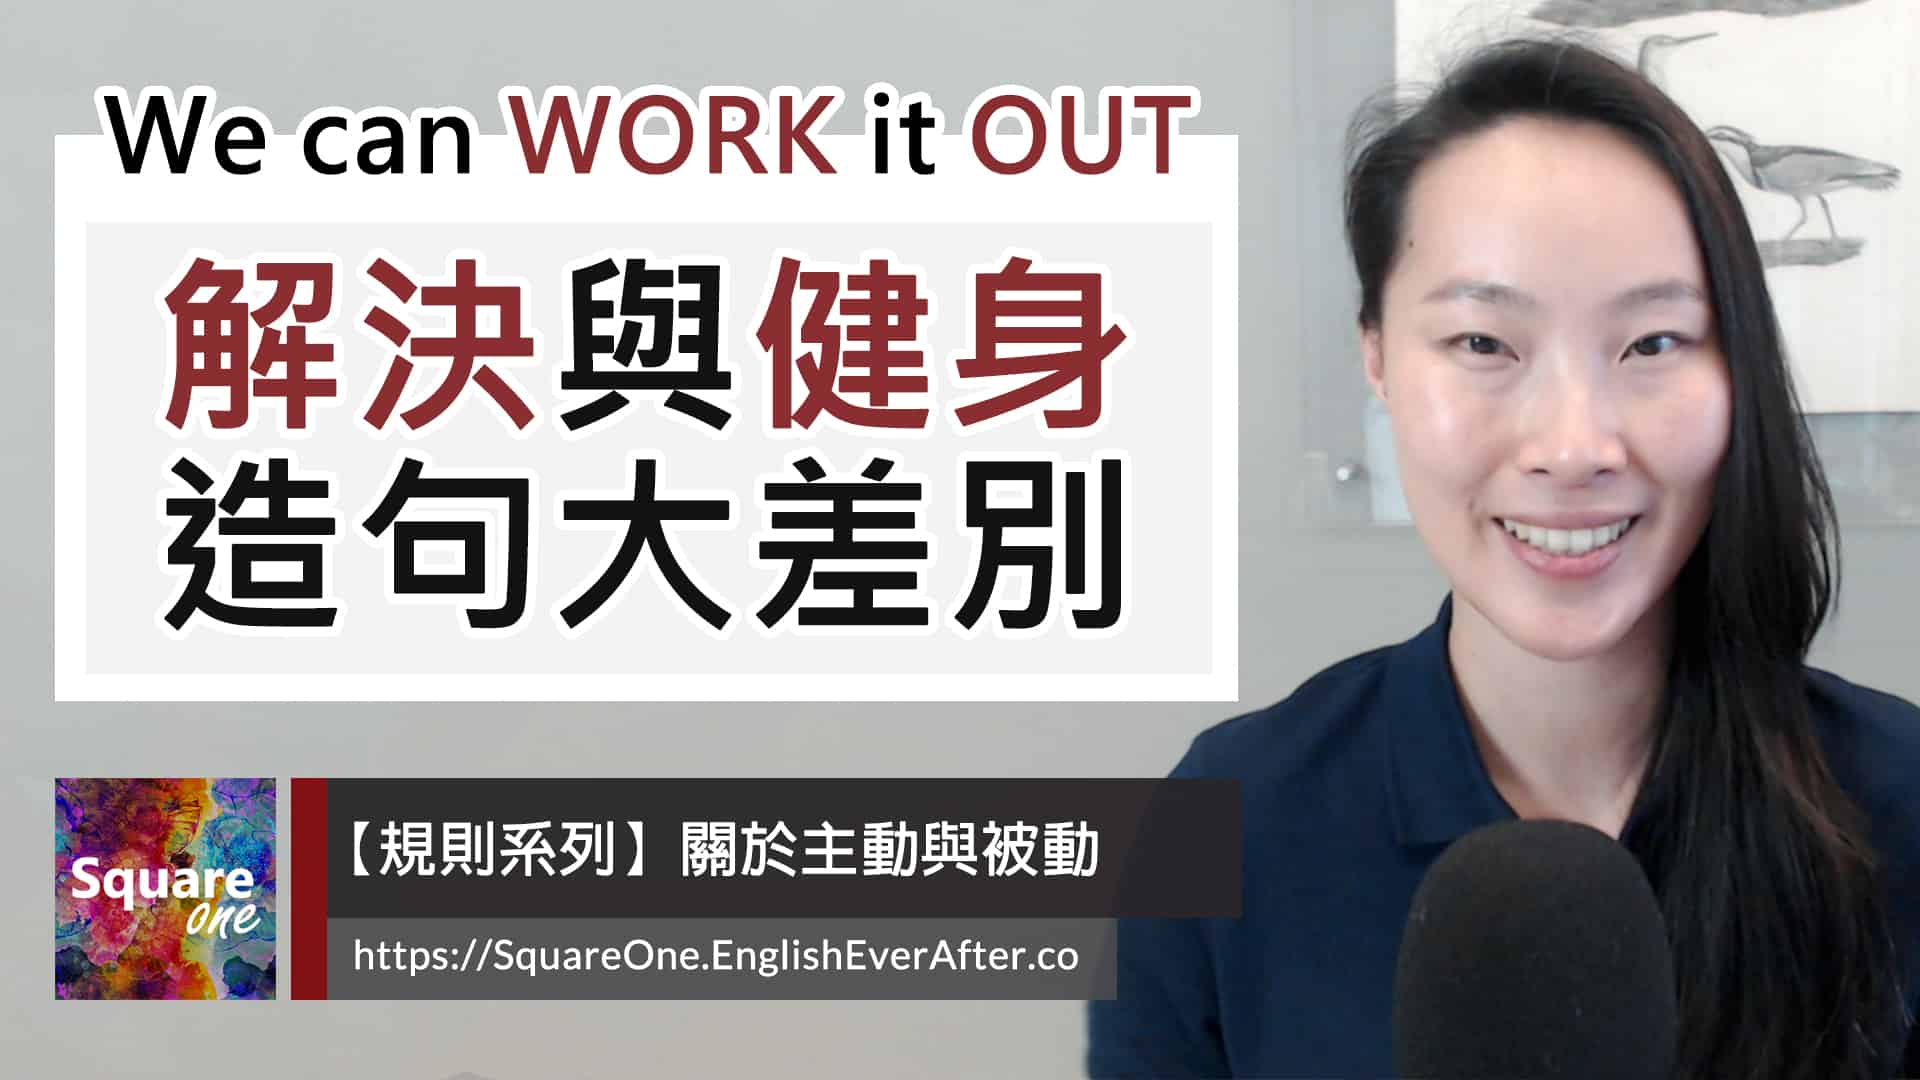 Work out 中文 (解決 vs. 健身)  We can work it out! 活化英文